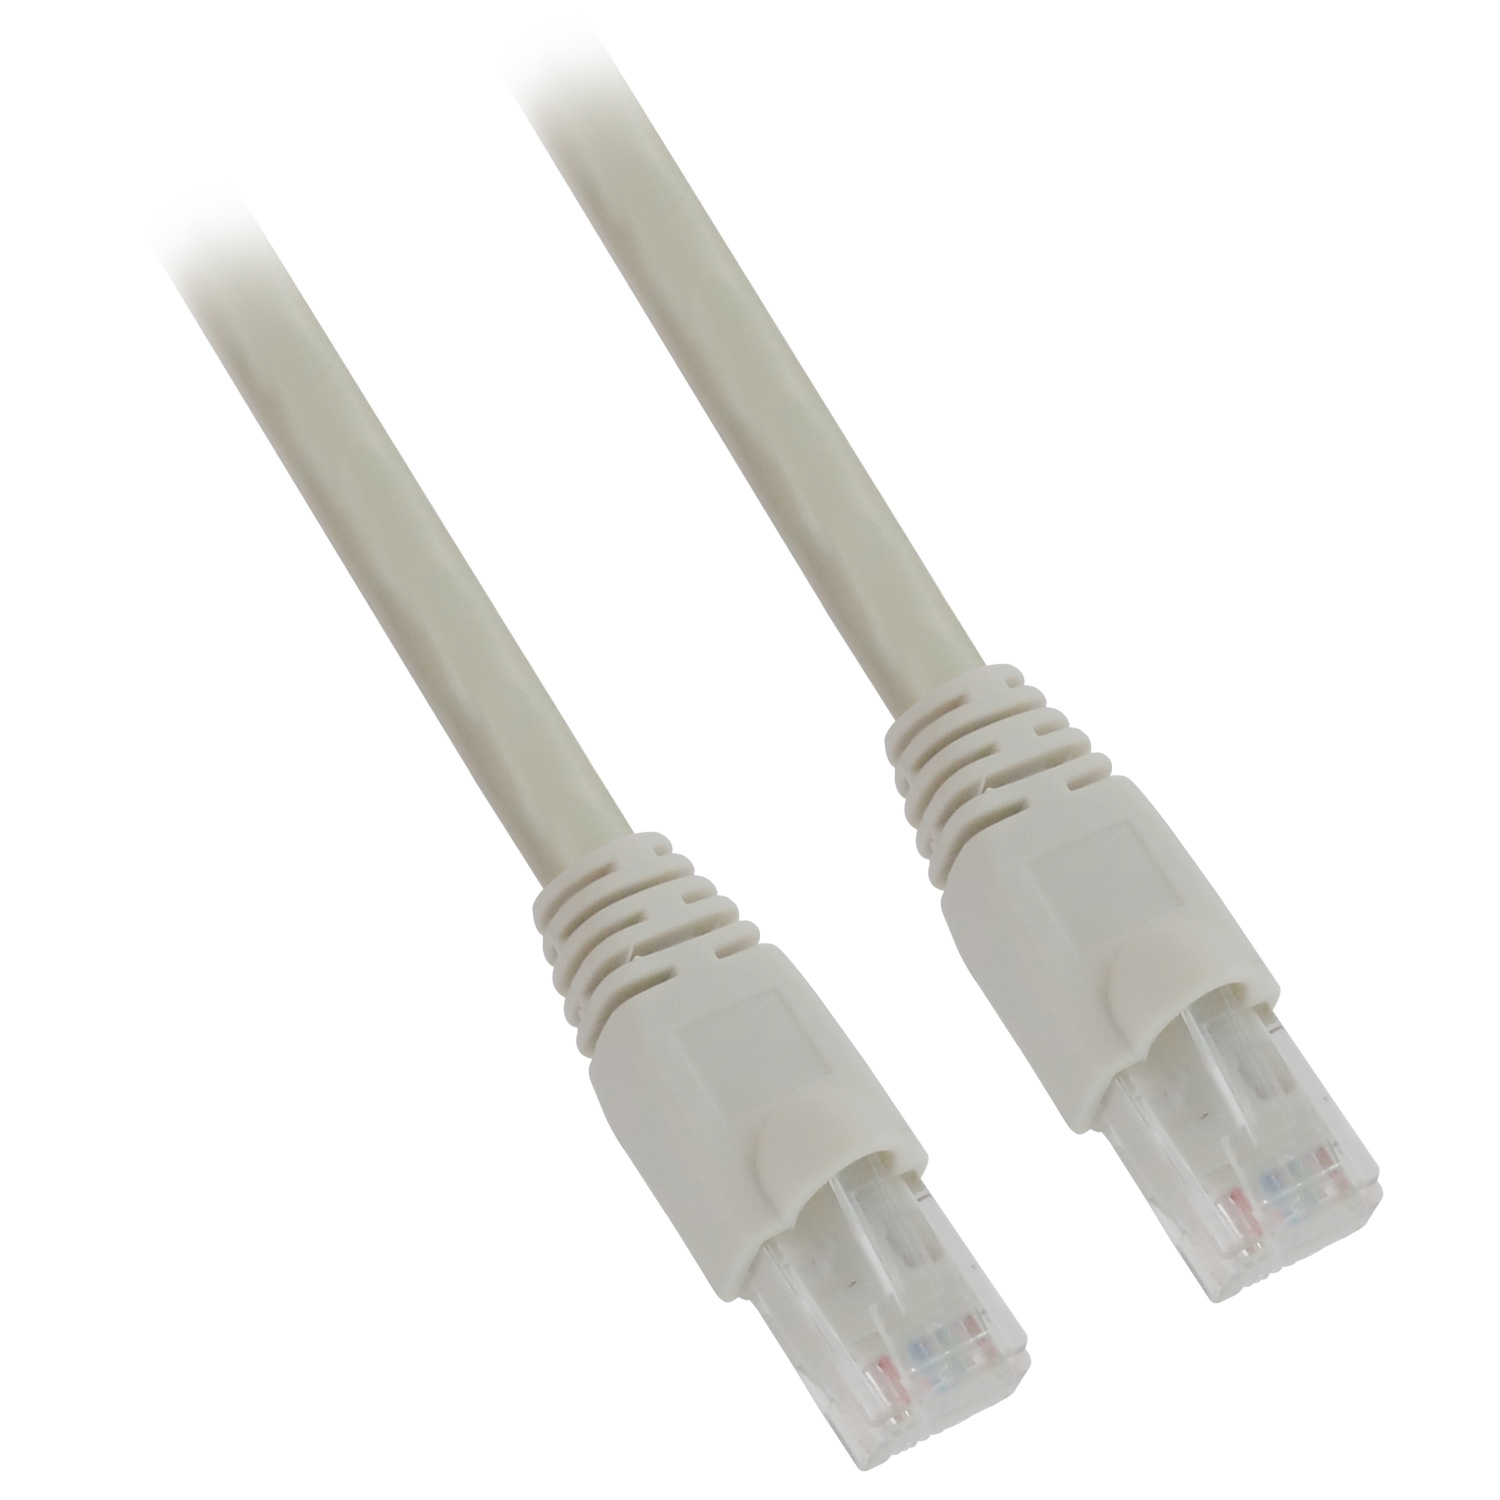 25ft 24AWG Molded Cat6a Network Cable - Gray